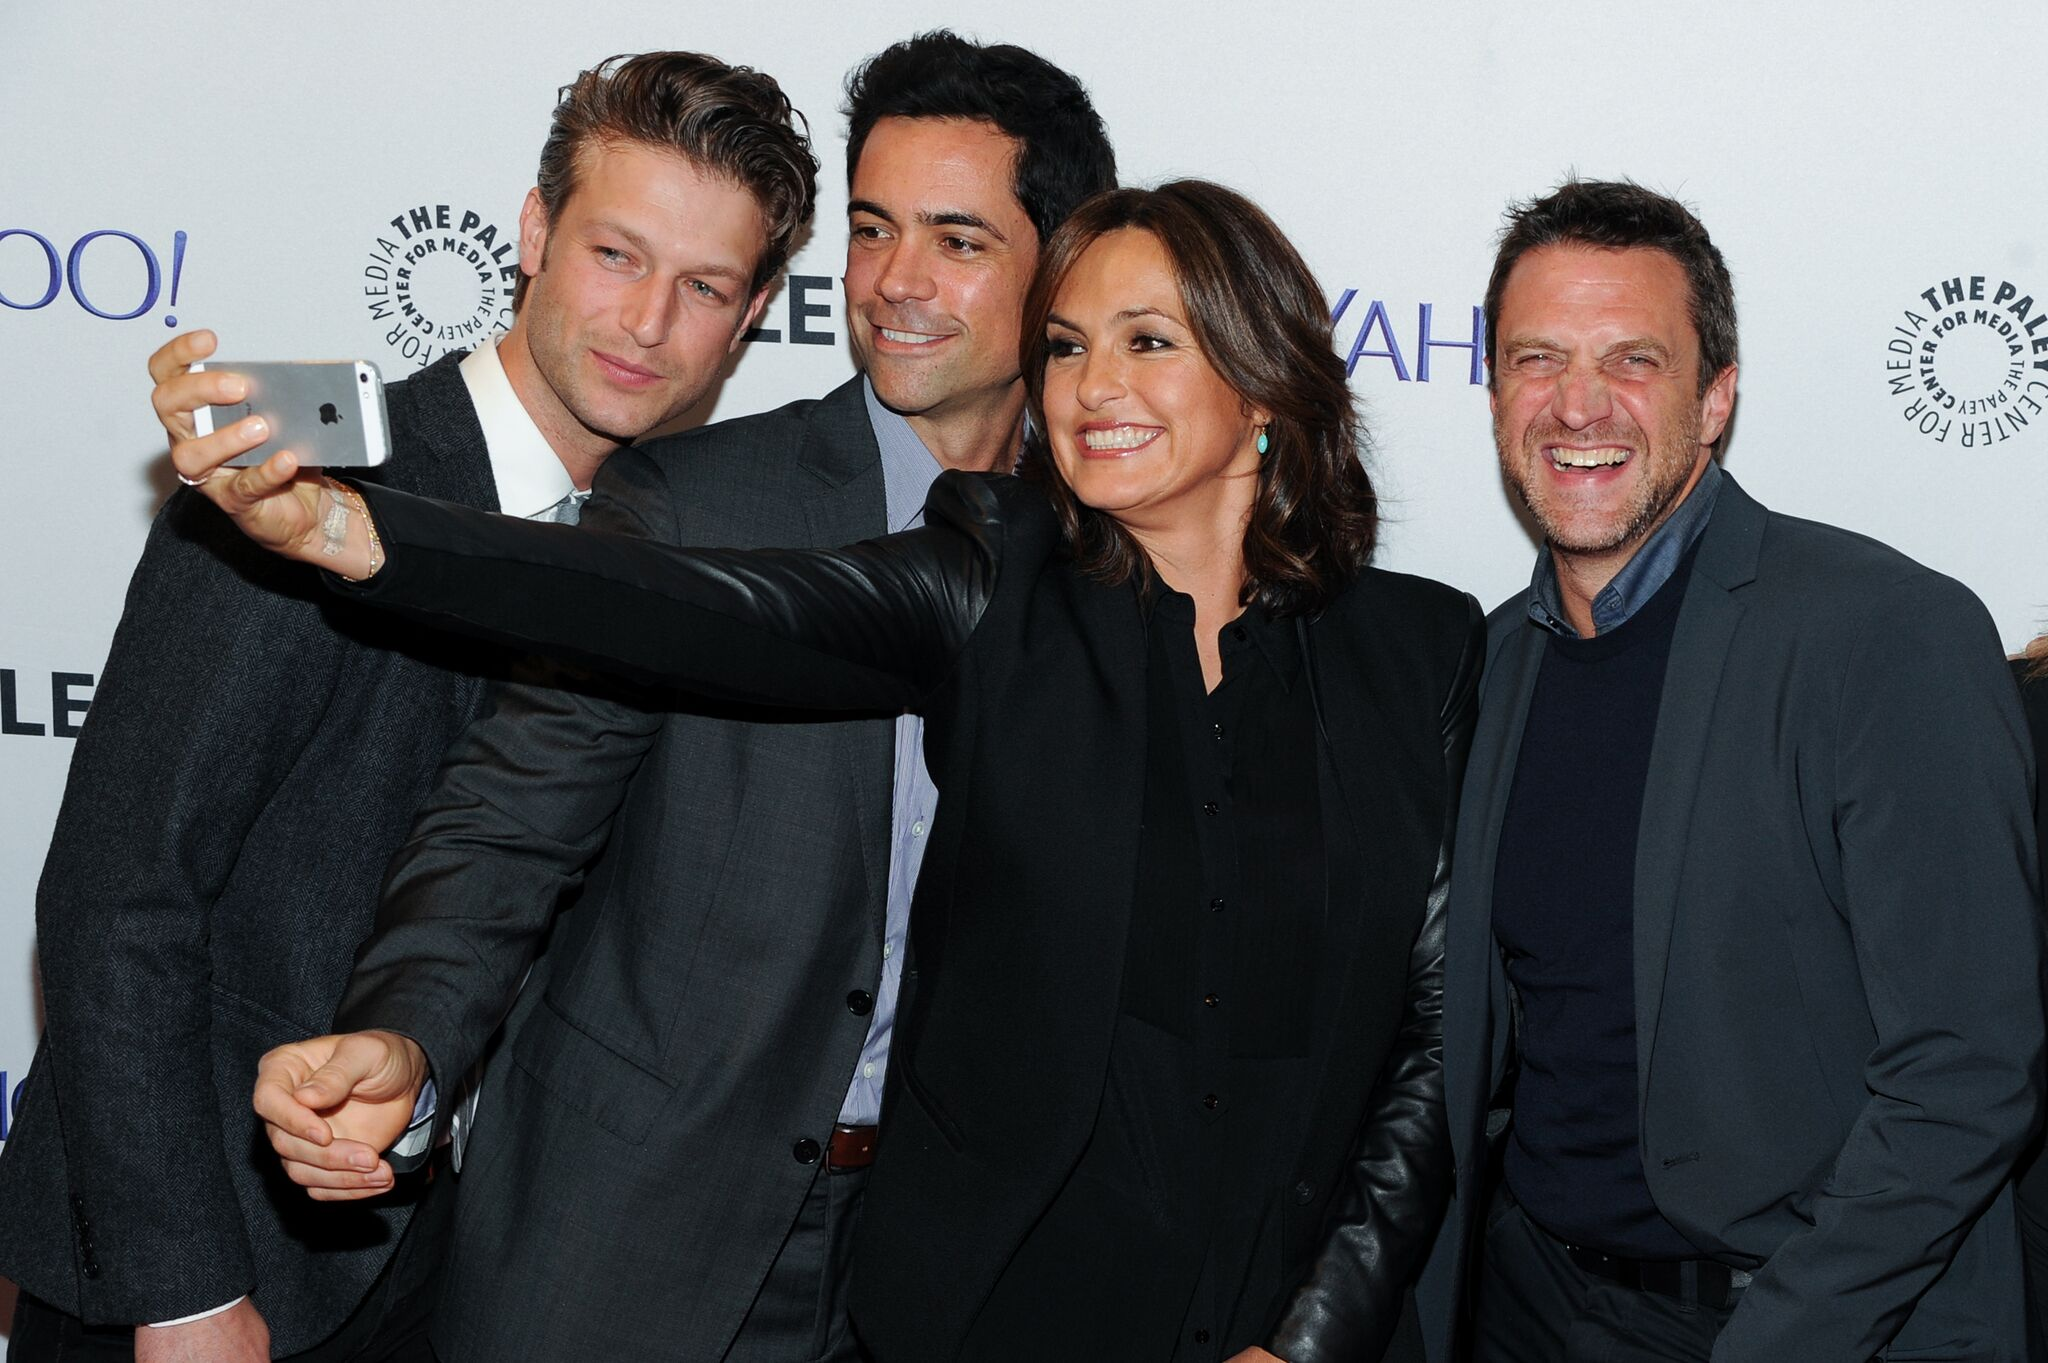 Peter Scanavino, Danny Pino, Mariska Hargitay and Raul Esparza attend the 2nd Annual Paleyfest New York Presents; Law & Order: SVU"